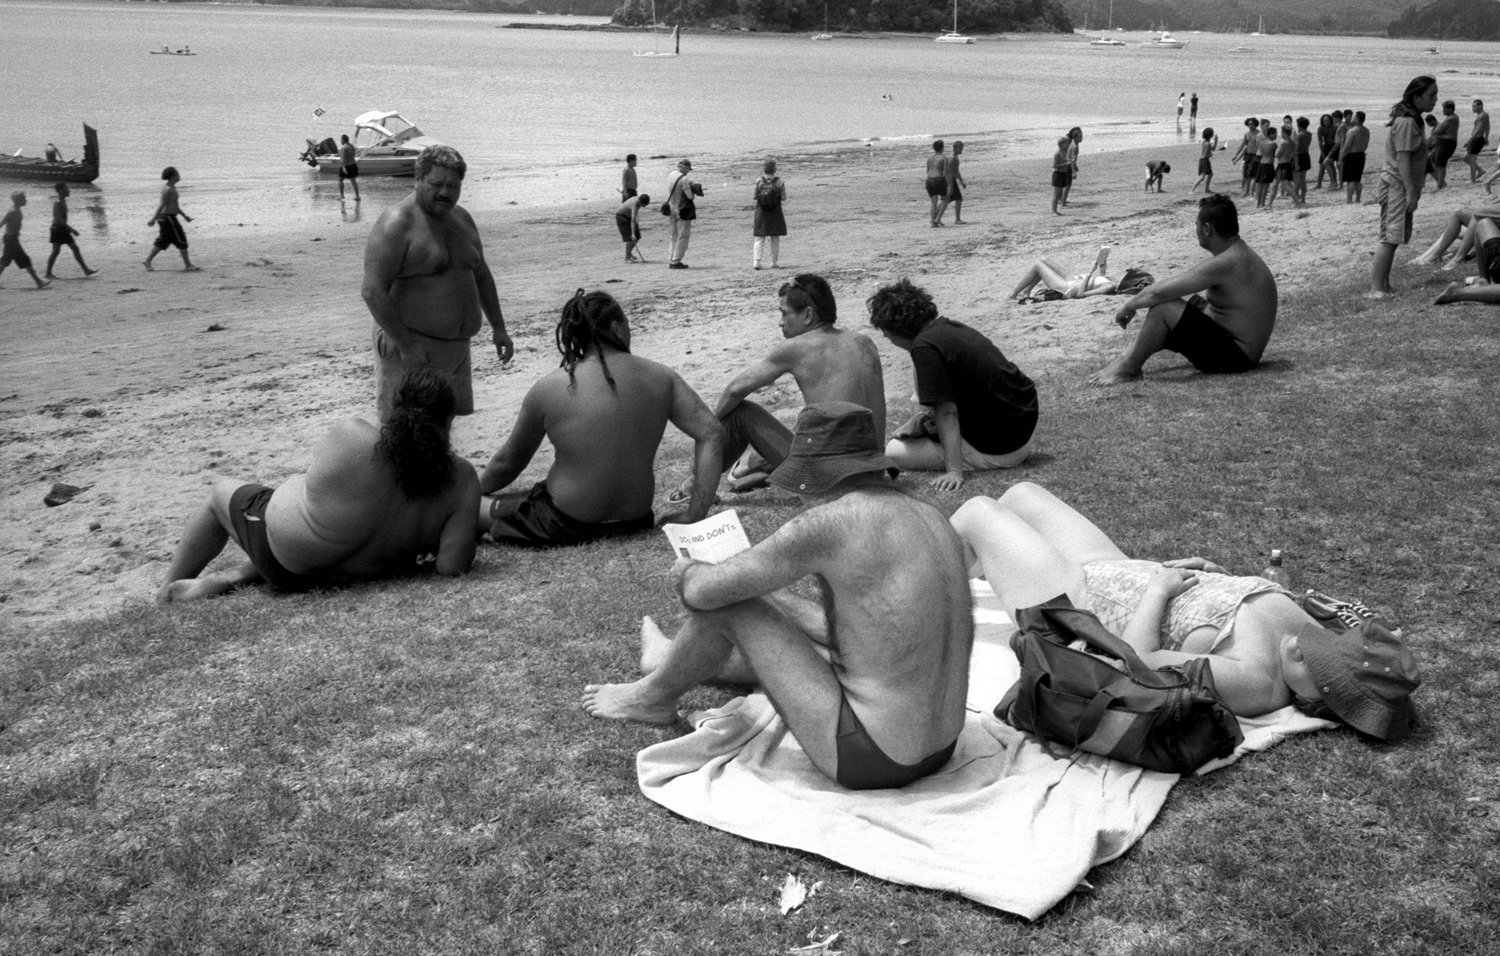 ©Tamara Voninski. People on the beach in Paihia, New Zealand in the Bay of Islands.  In 2005, the New Zealand government passed the controversial Seabed and Foreshore legislation to prevent Maori from claiming exclusive ownership of New Zealand2019s resource rich coastline and seabed. The Maori traditionally see themselves as caretakers of the land and coastline.  The Maori population is approximately 530,000 of four million New Zealanders.